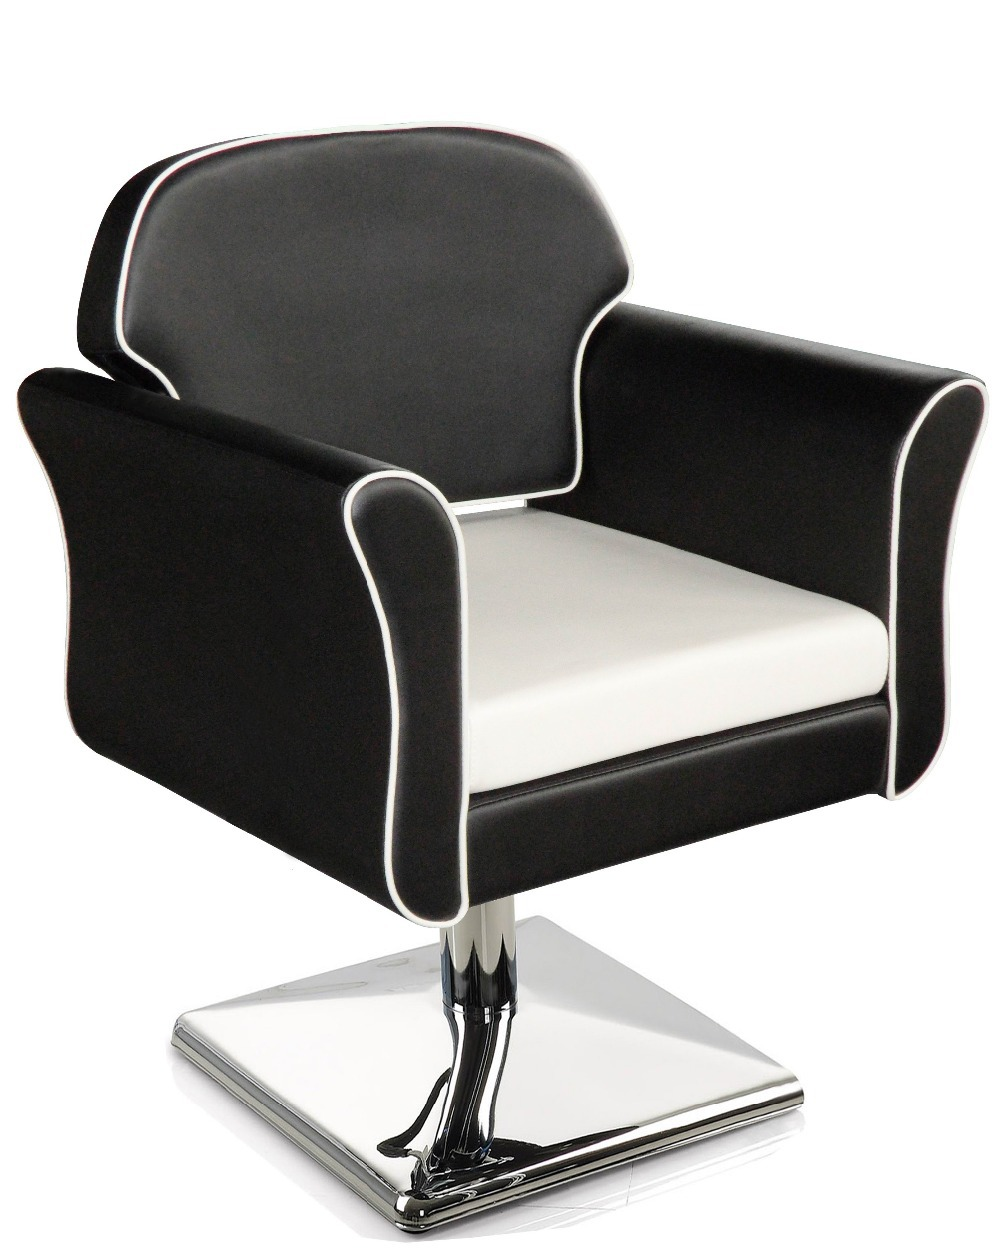 2015 Selected materials portable hair styling chair